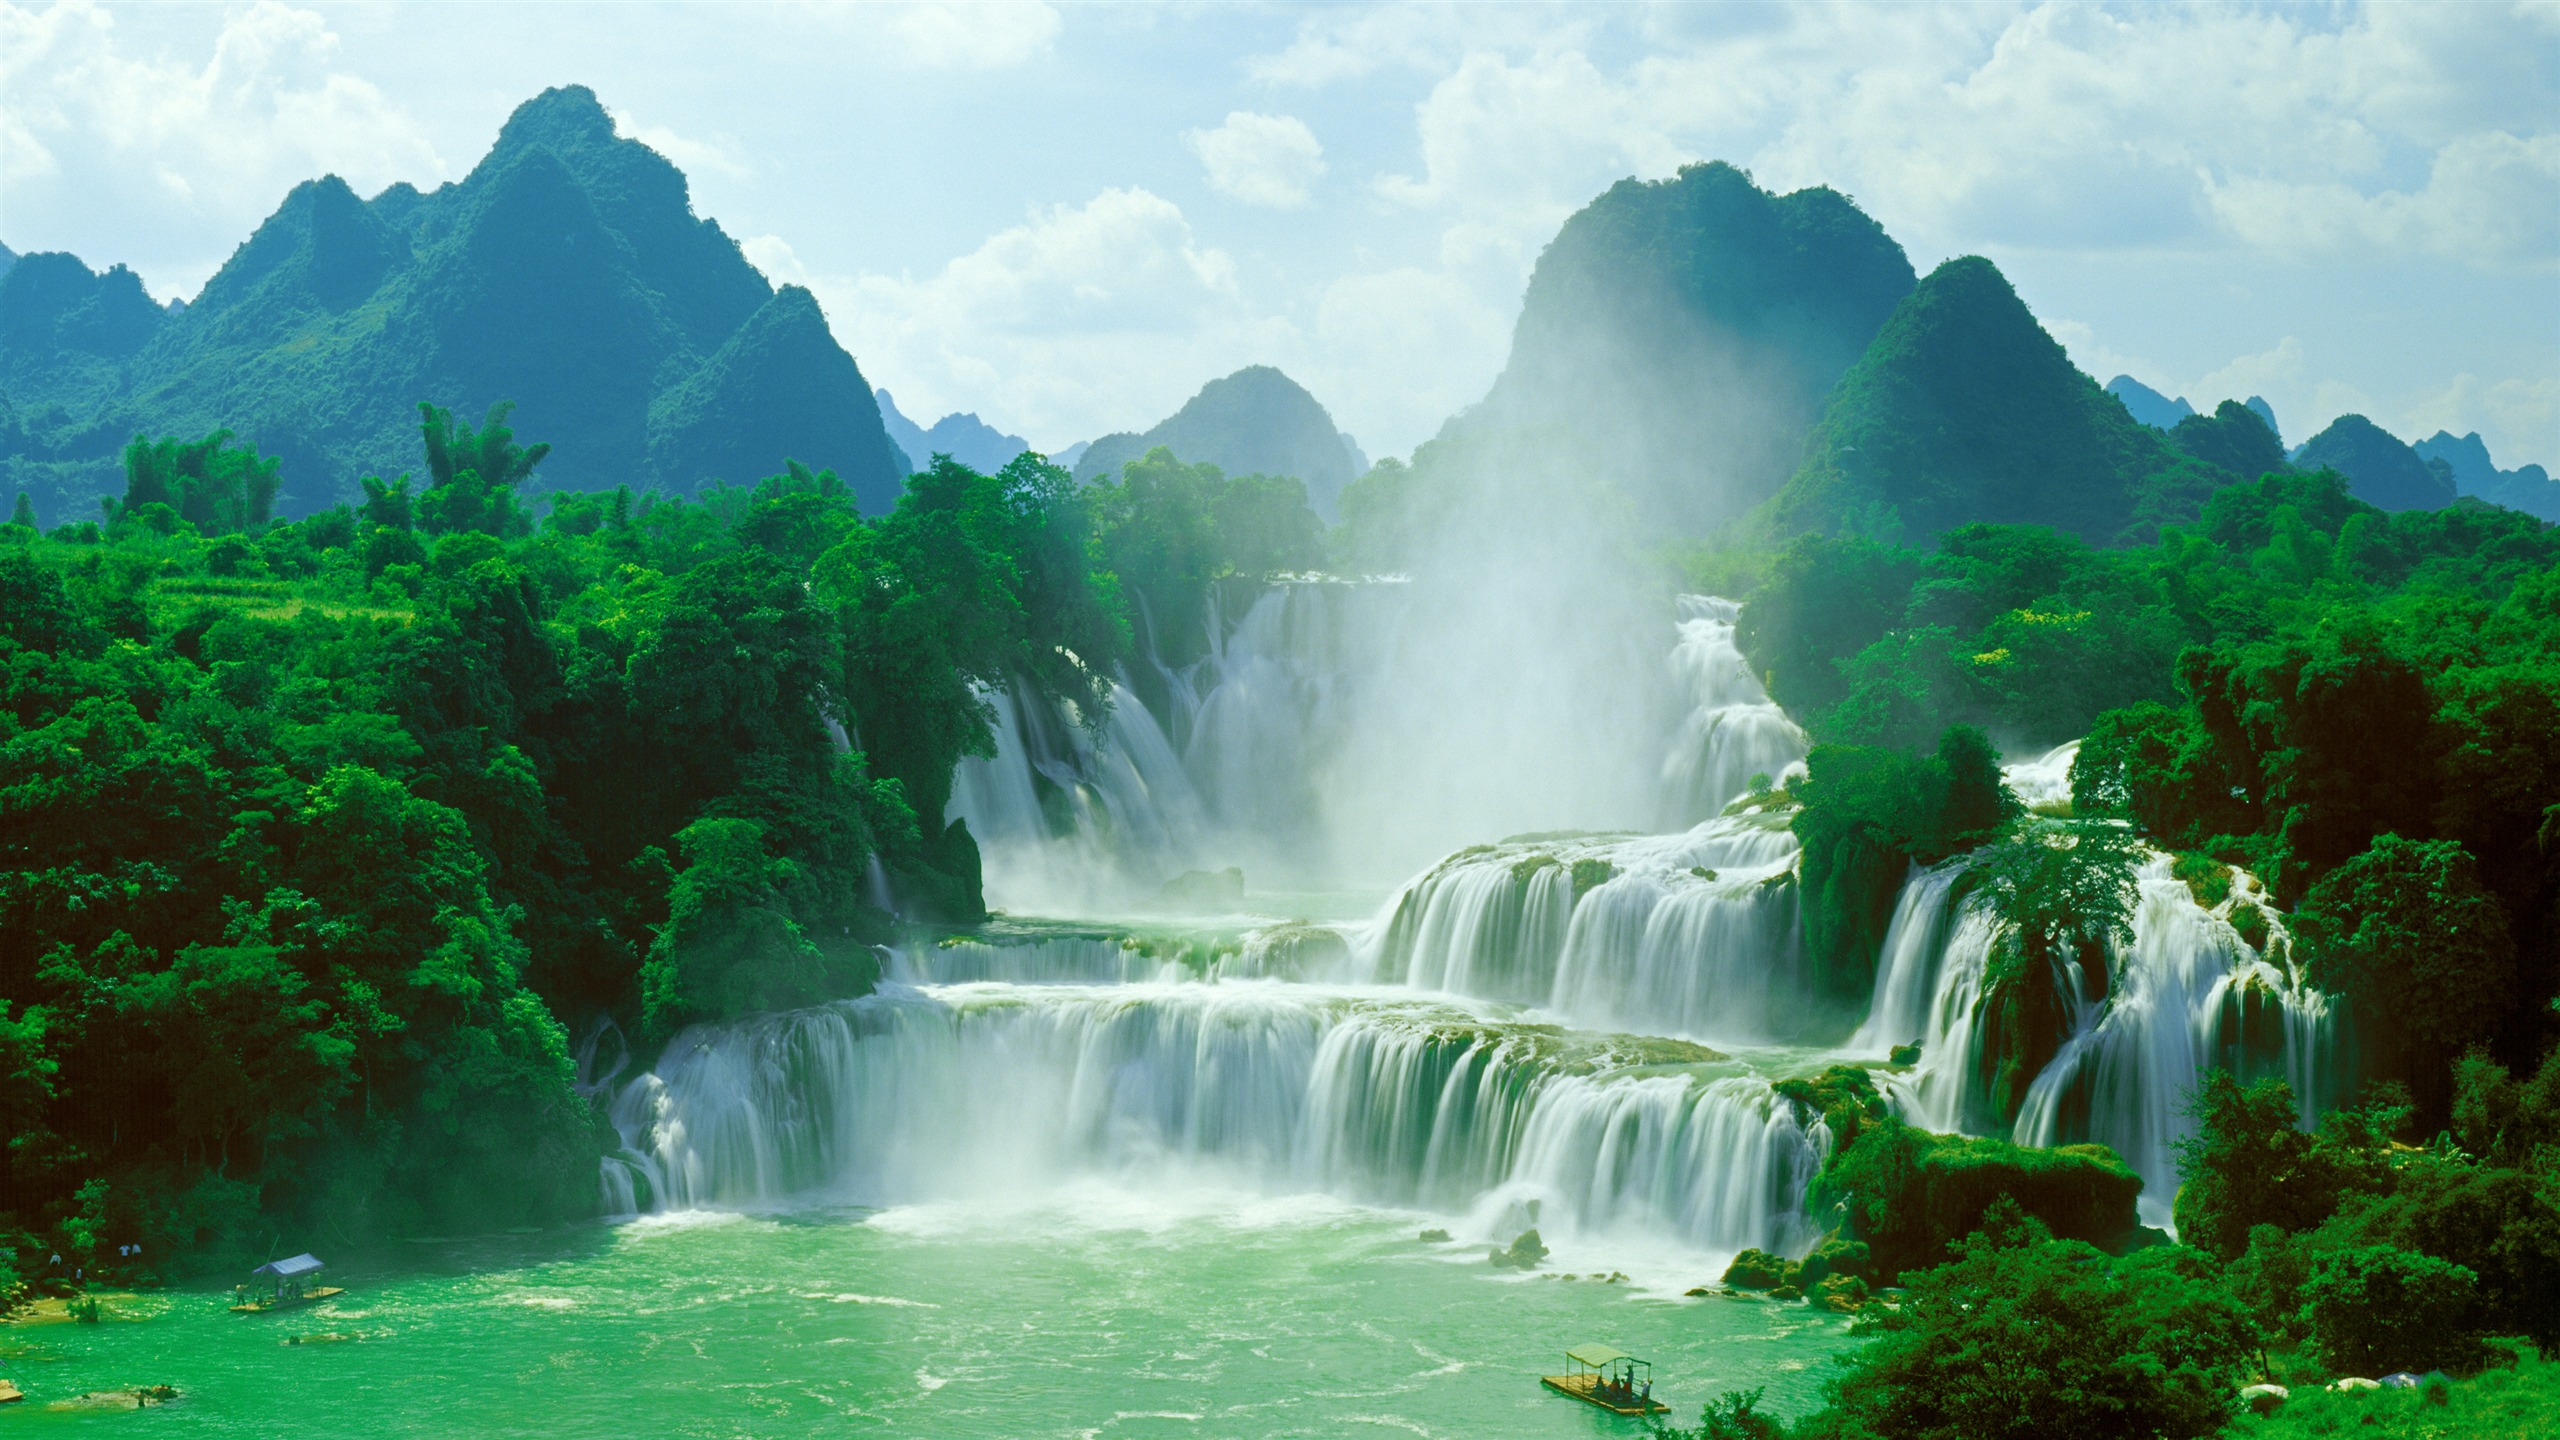 K And K Auto >> China Guangxi travel jungle waterfall 4K Ultra HD Preview | 10wallpaper.com